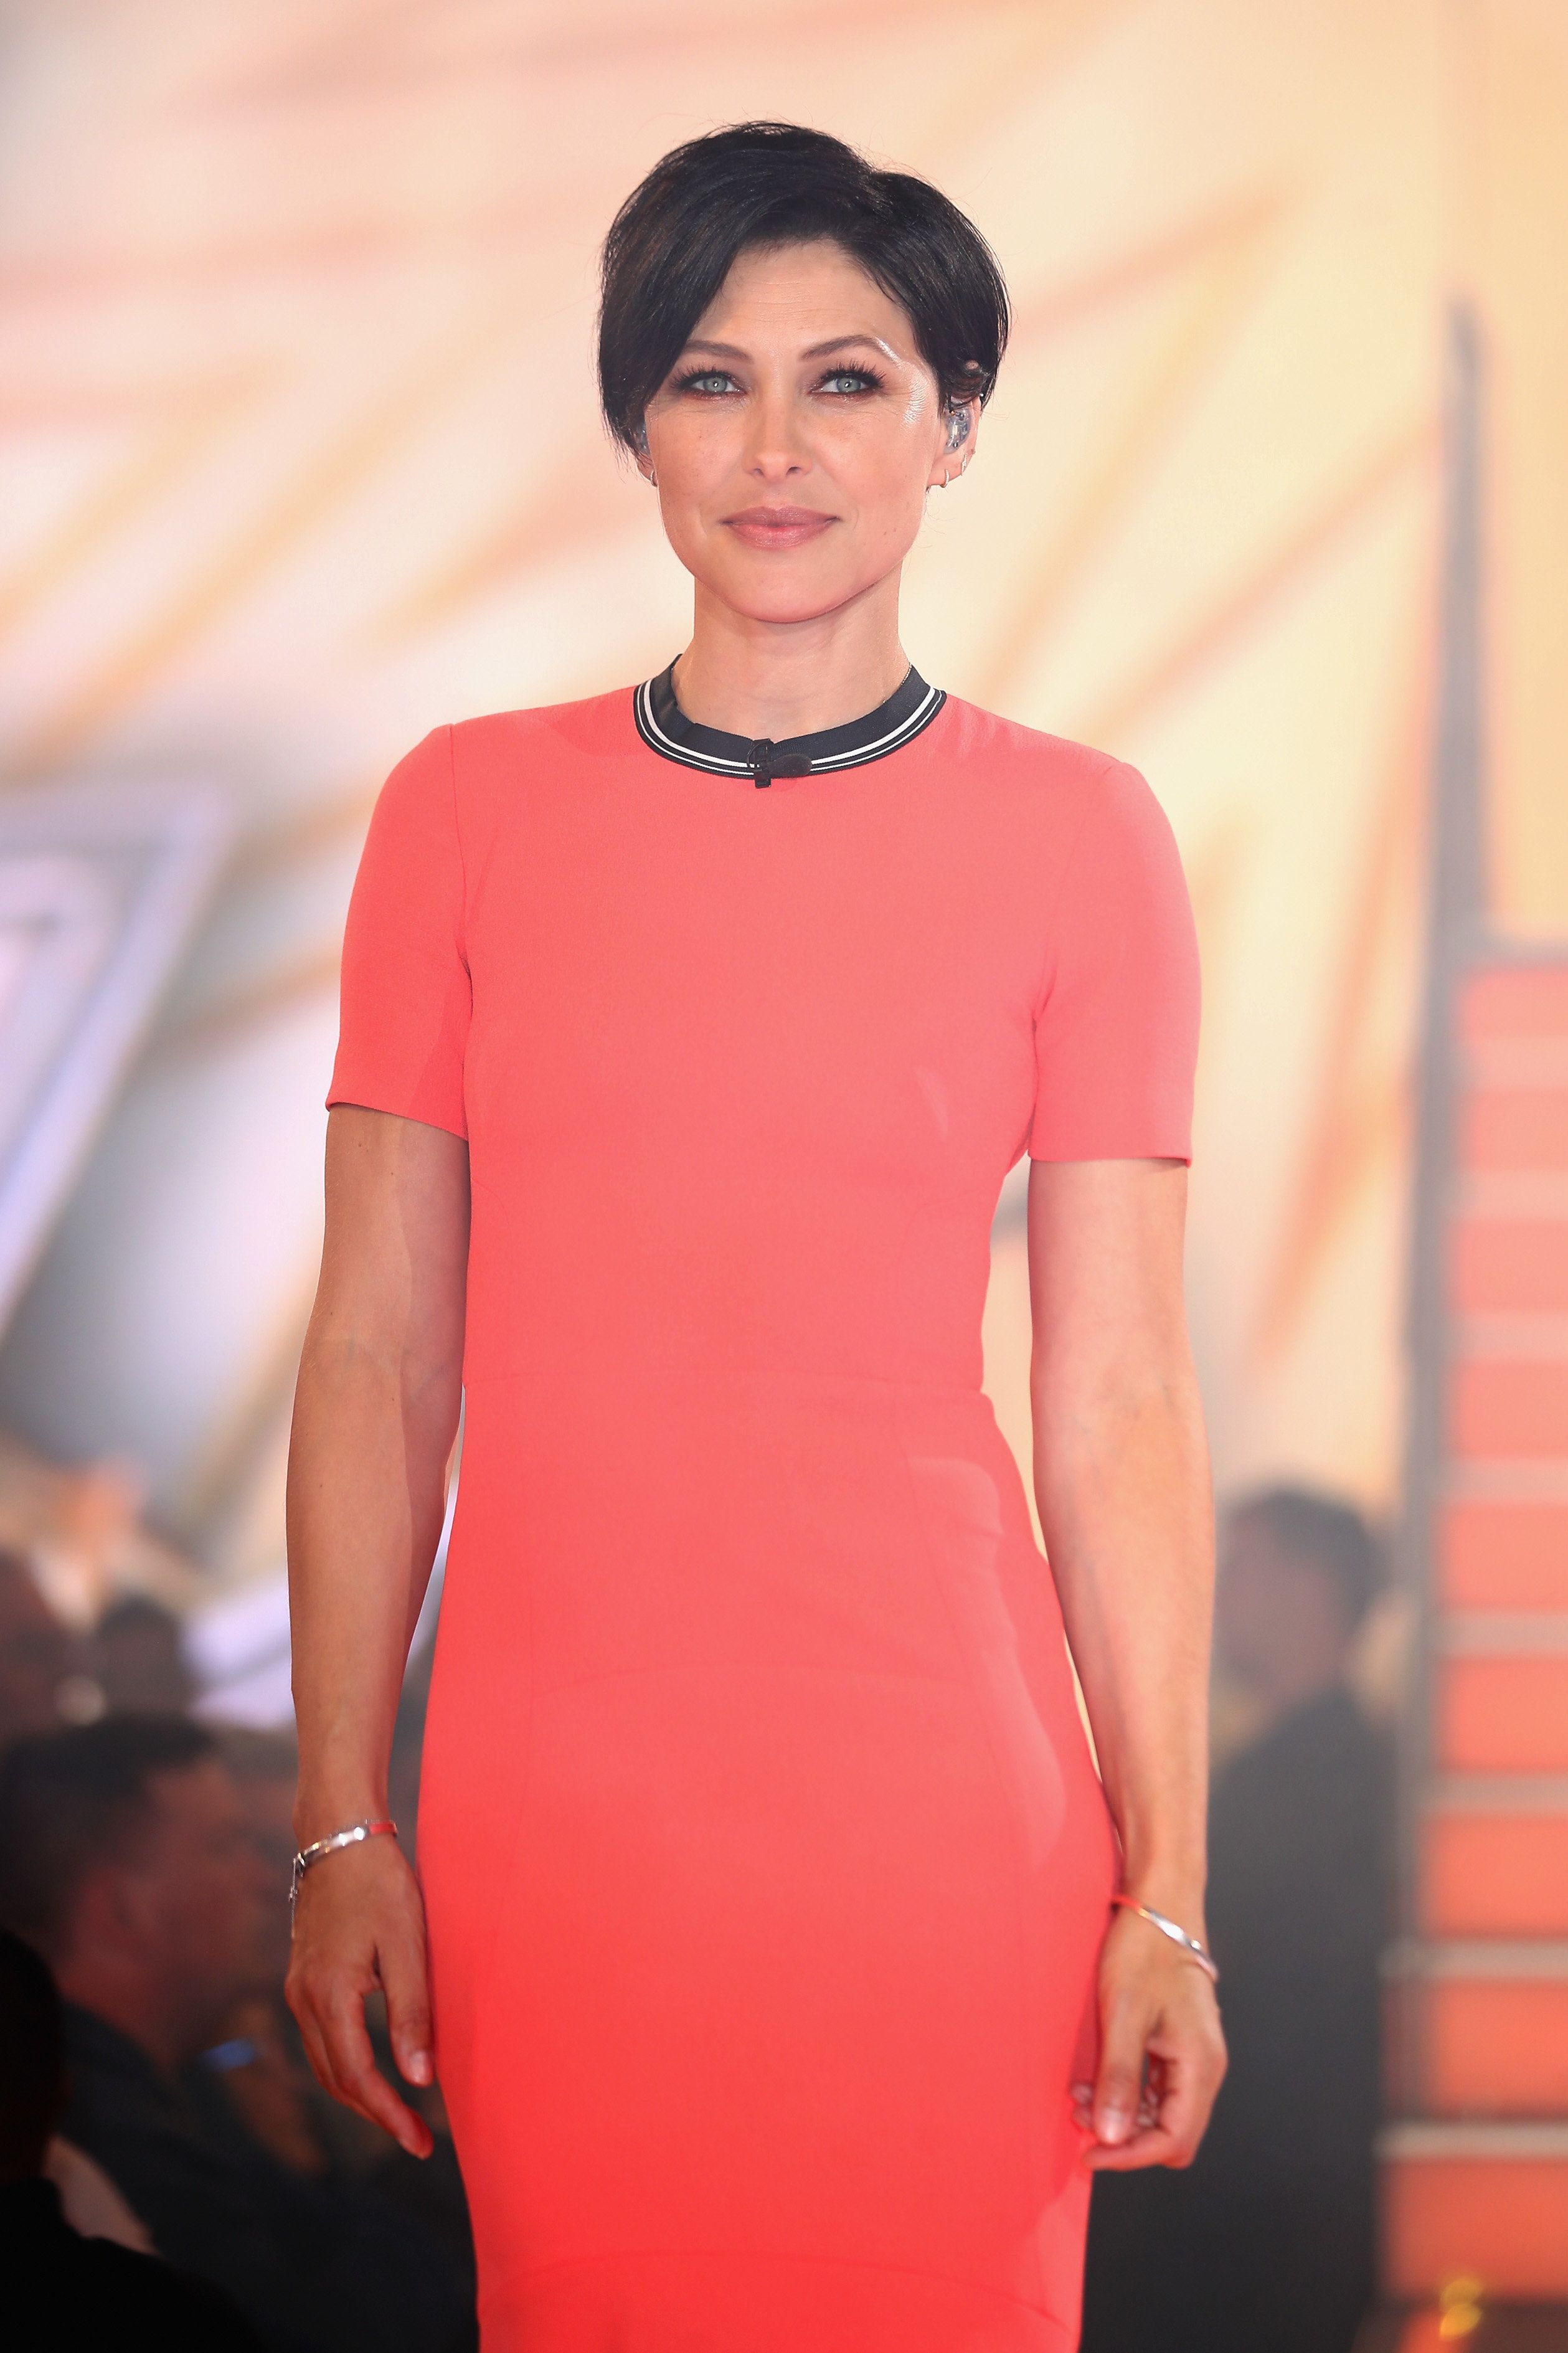 Emma Willis presents the Celebrity Big Brother launch at Elstree Studios on August 1, 2017 in Borehamwood,